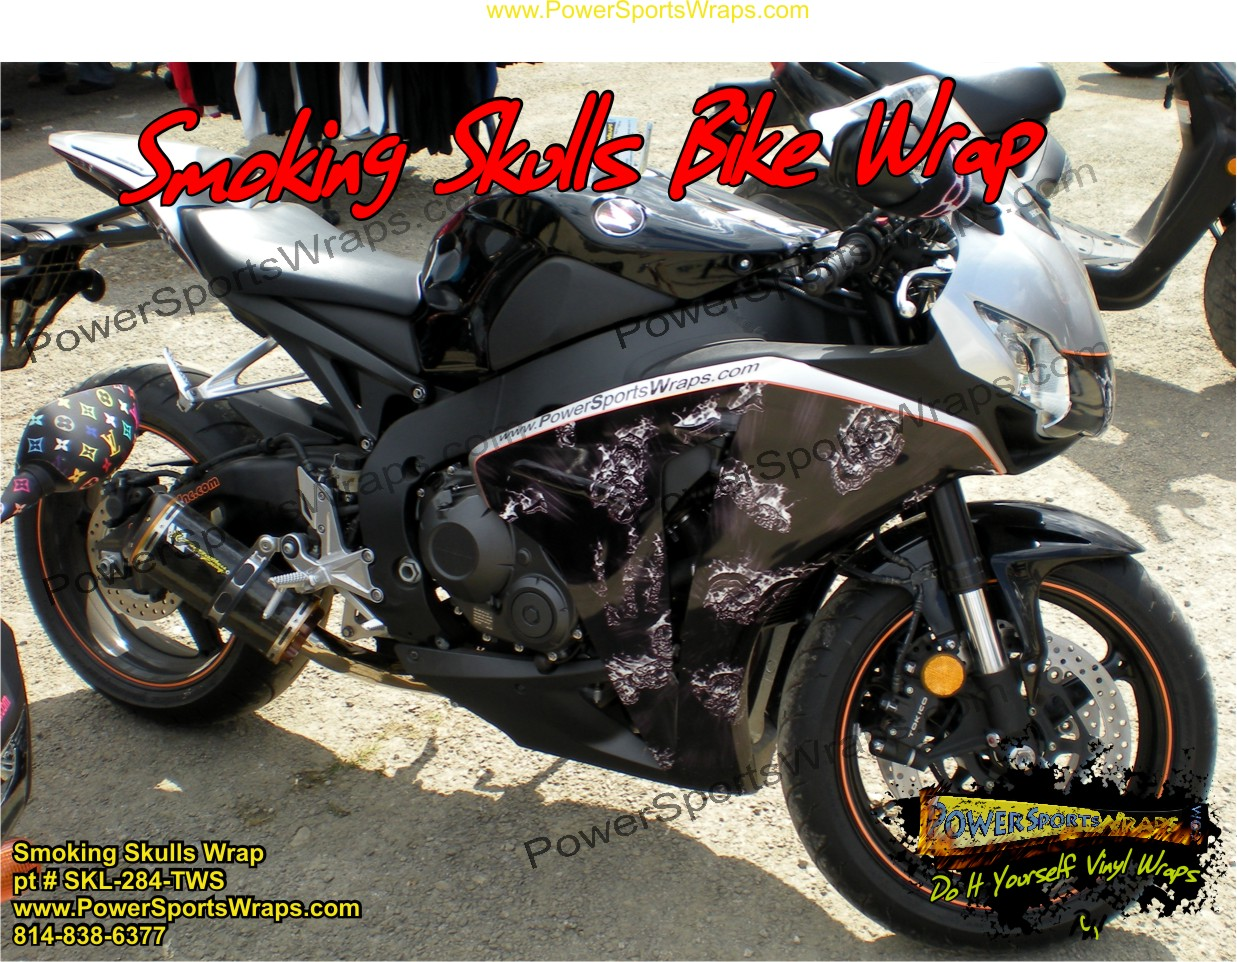 Skull Vinyl Archives Powersportswrapscom - Vinyl bike wrapmotorcycle wrap archives powersportswrapscom